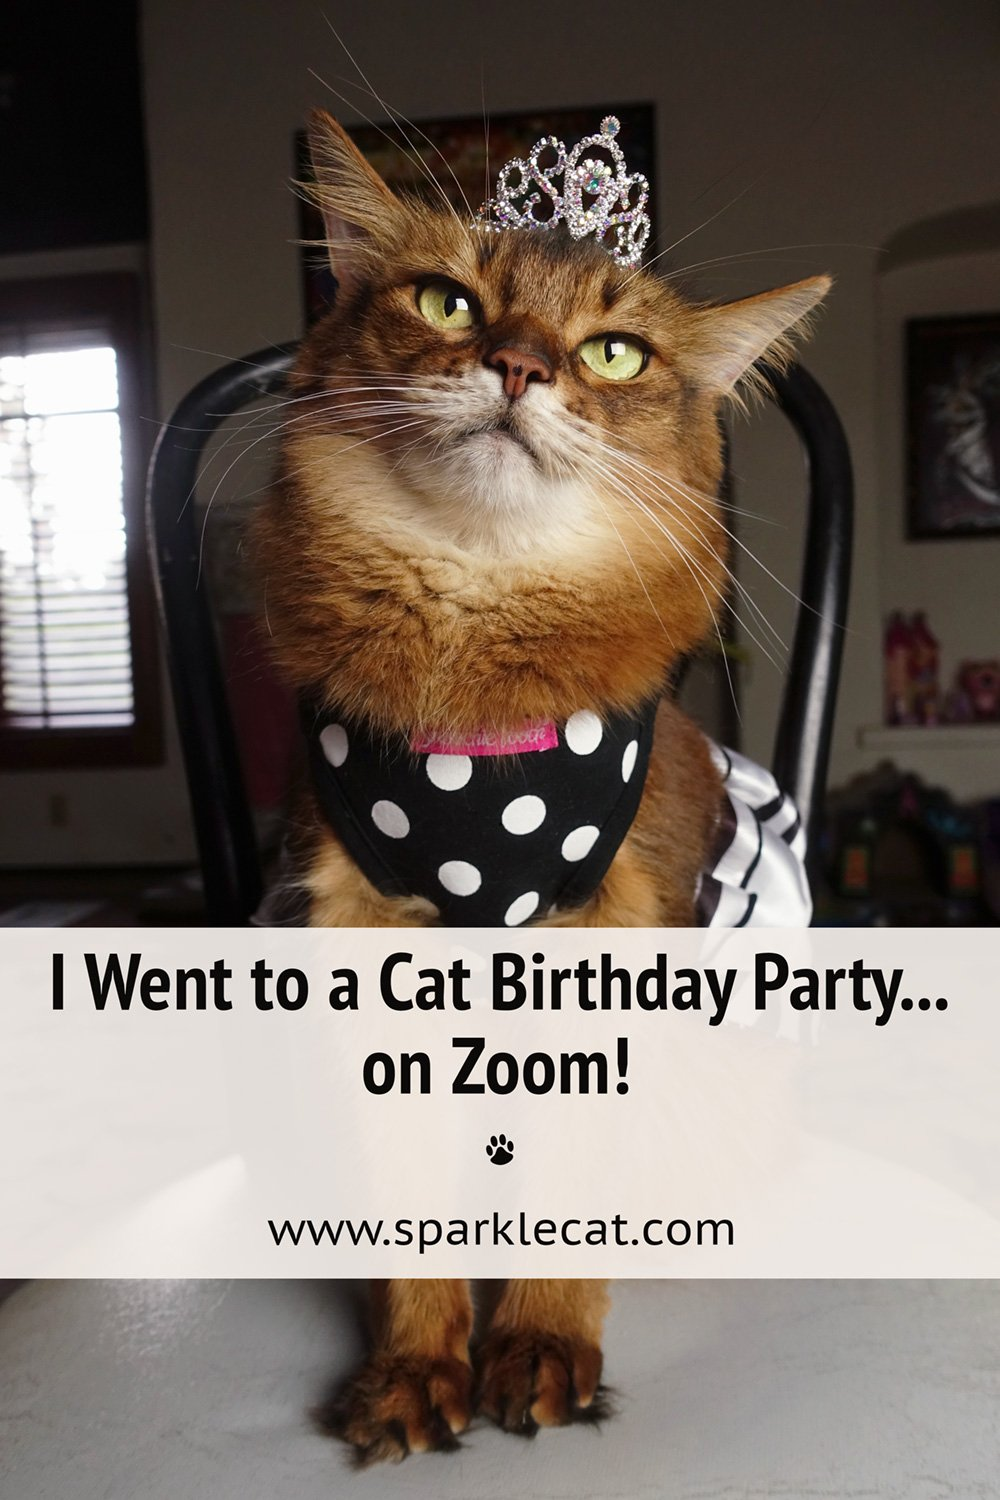 I Attended a Cat Birthday Party on Zoom!